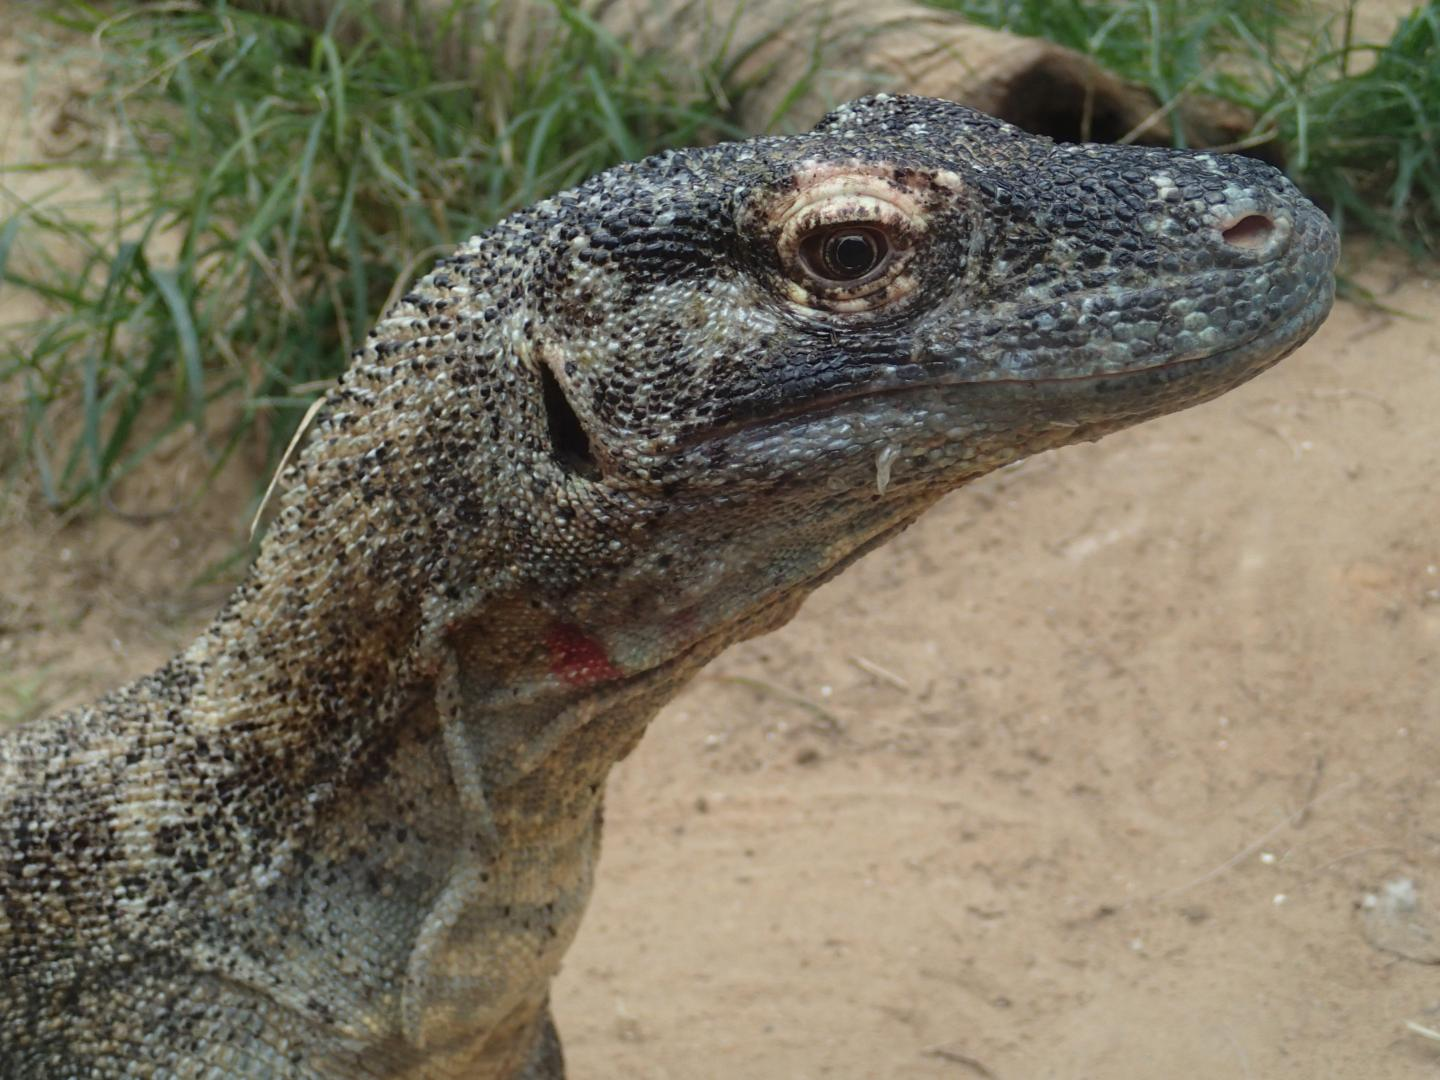 Antimicrobial Substances Identified in Komodo Dragon Blood